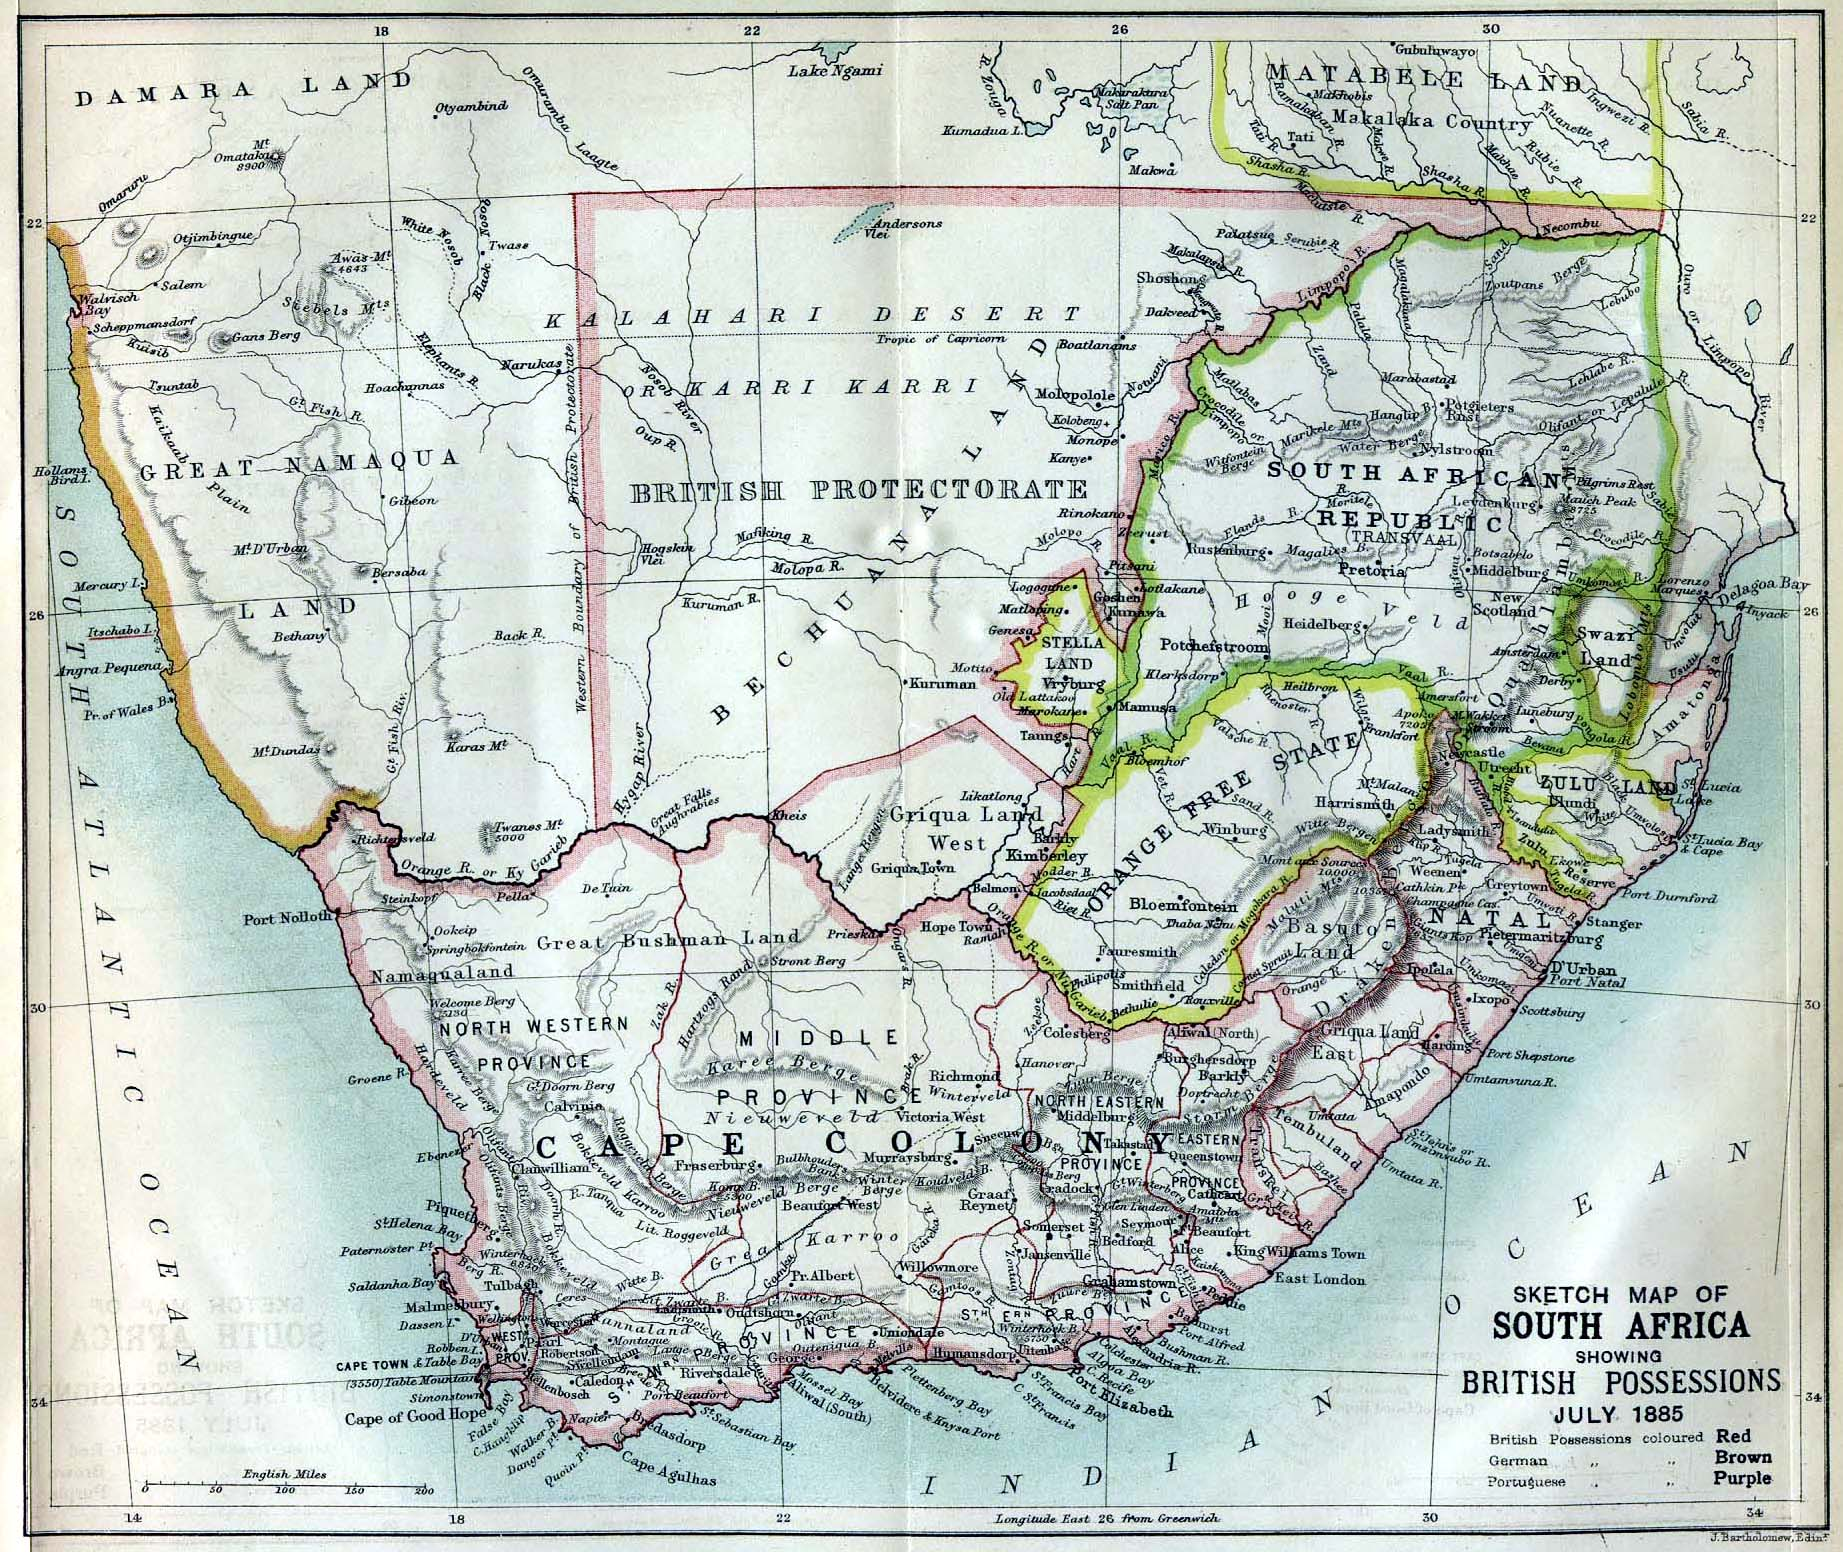 Map of southern Africa, including Cape Colony, published in 1885.